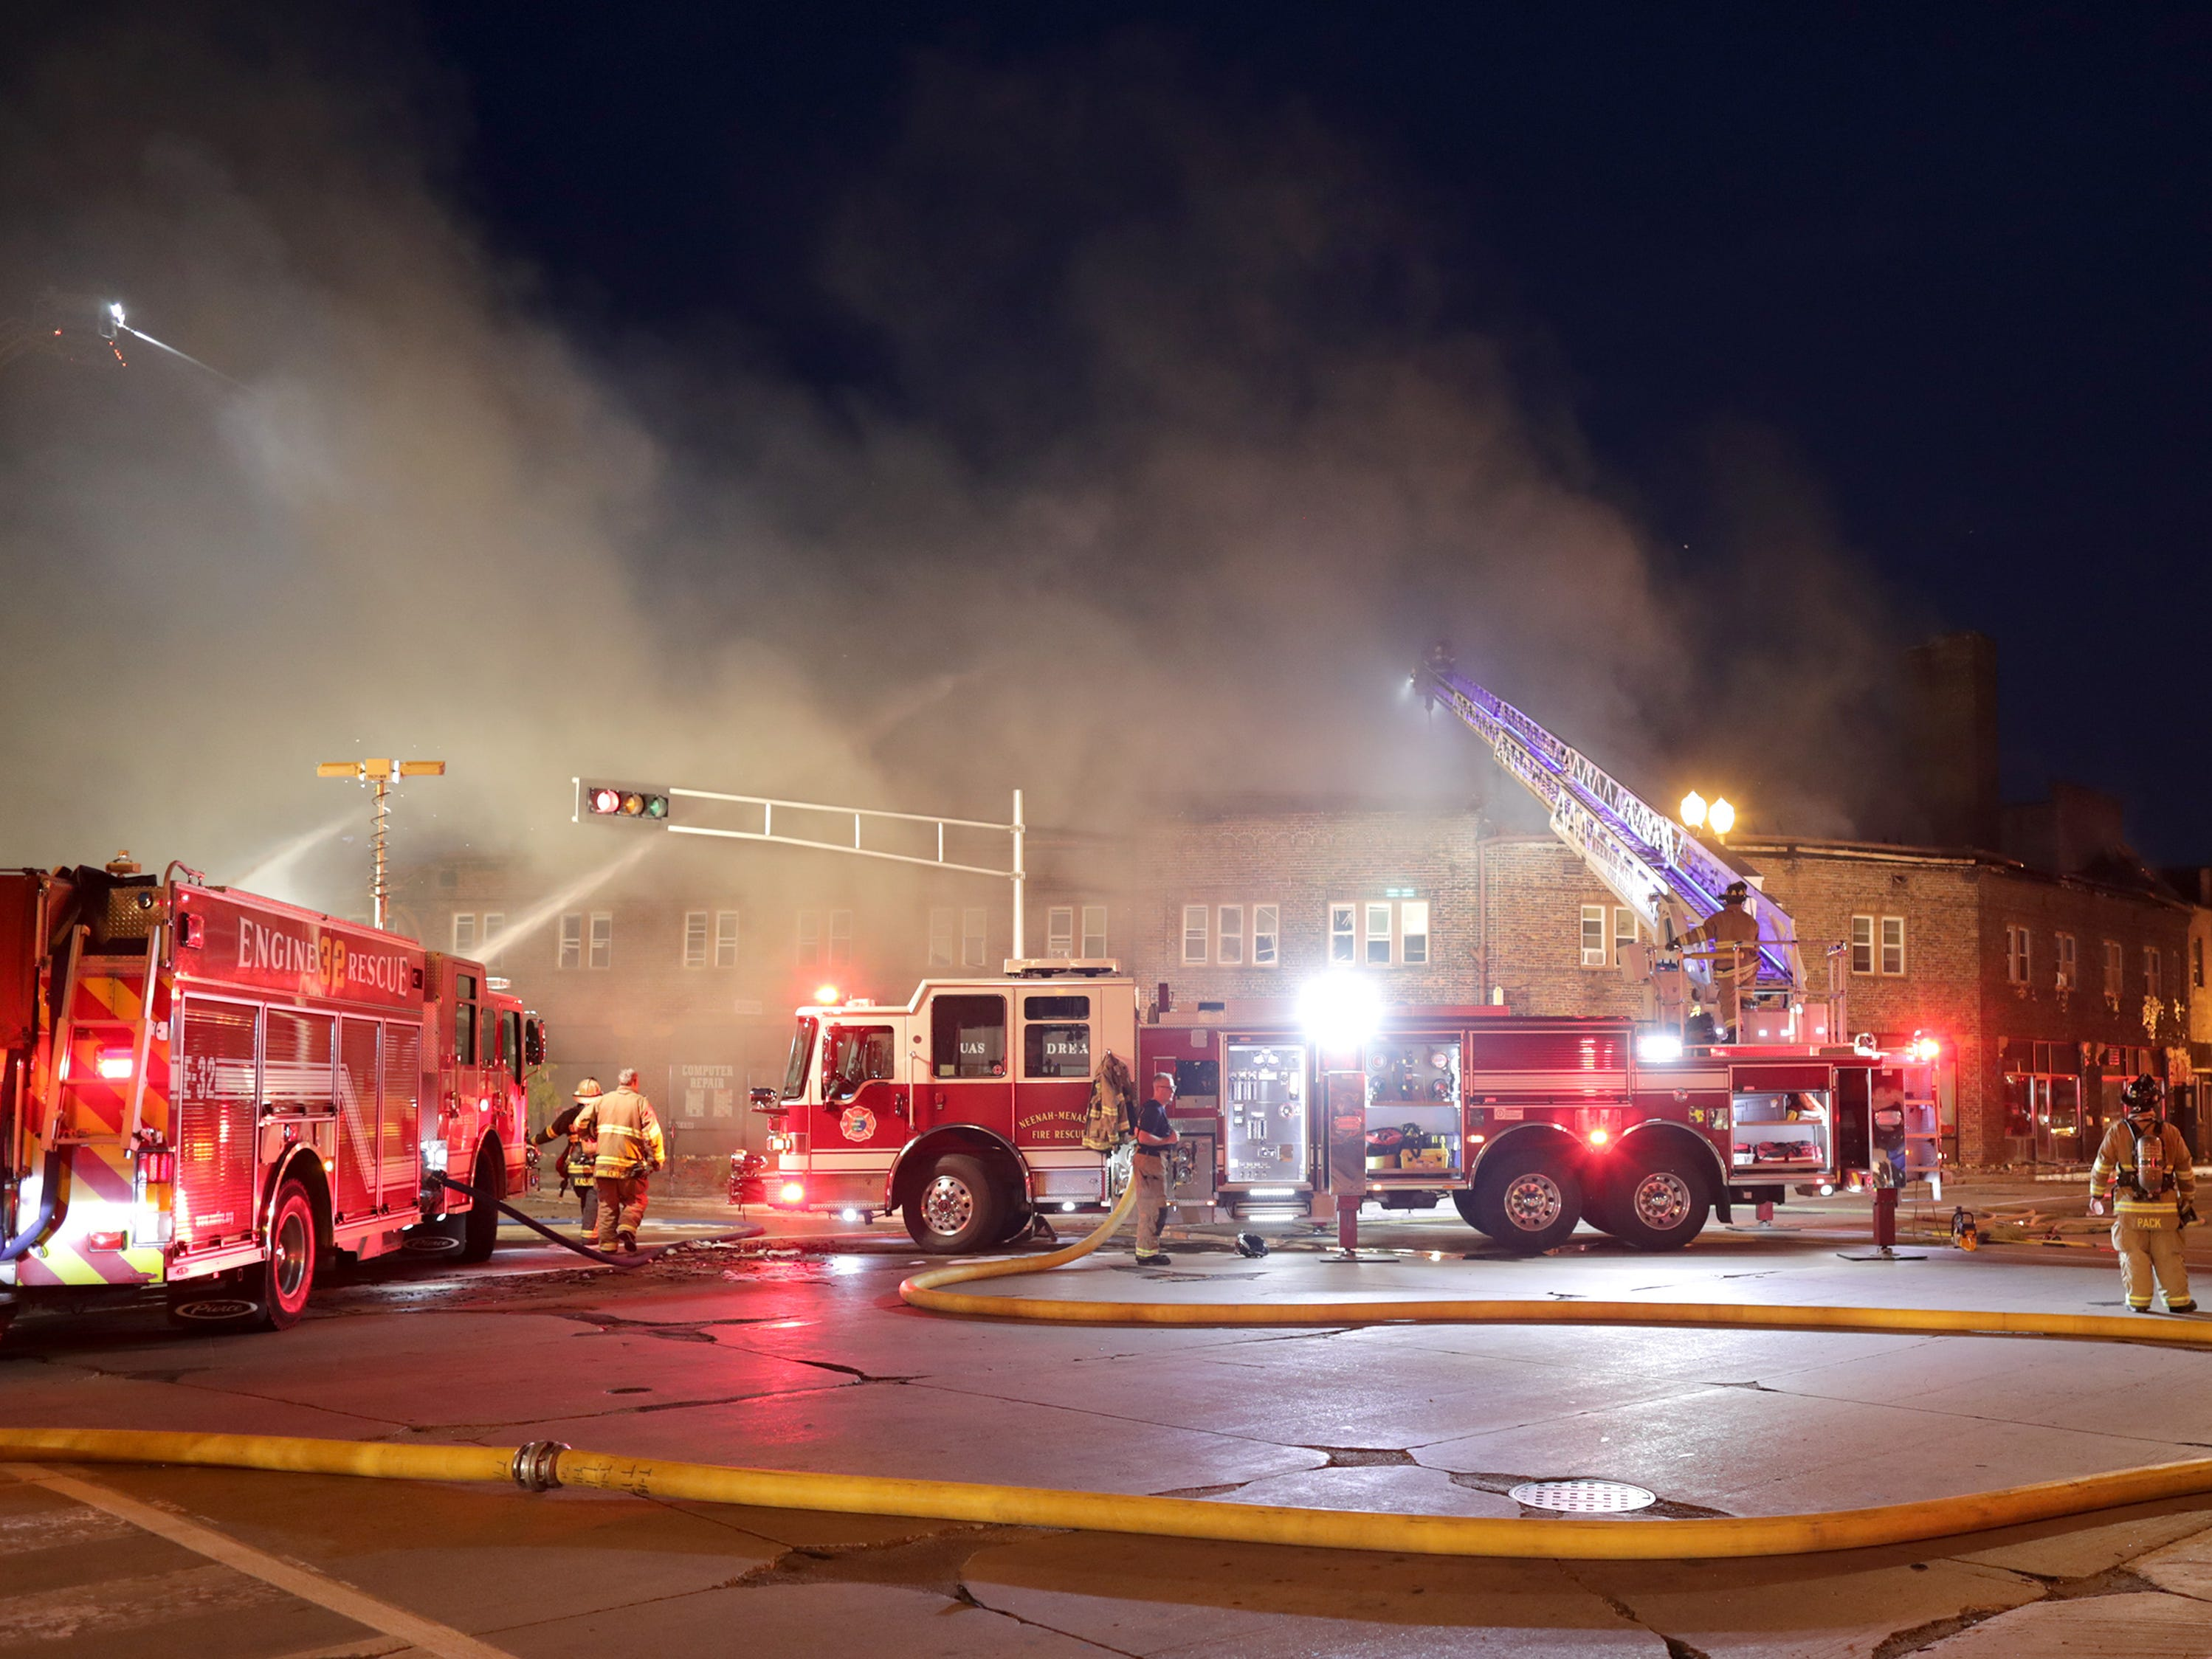 Firefighters were on the scene until early Saturday morning as they battled a blaze in downtown Menasha.